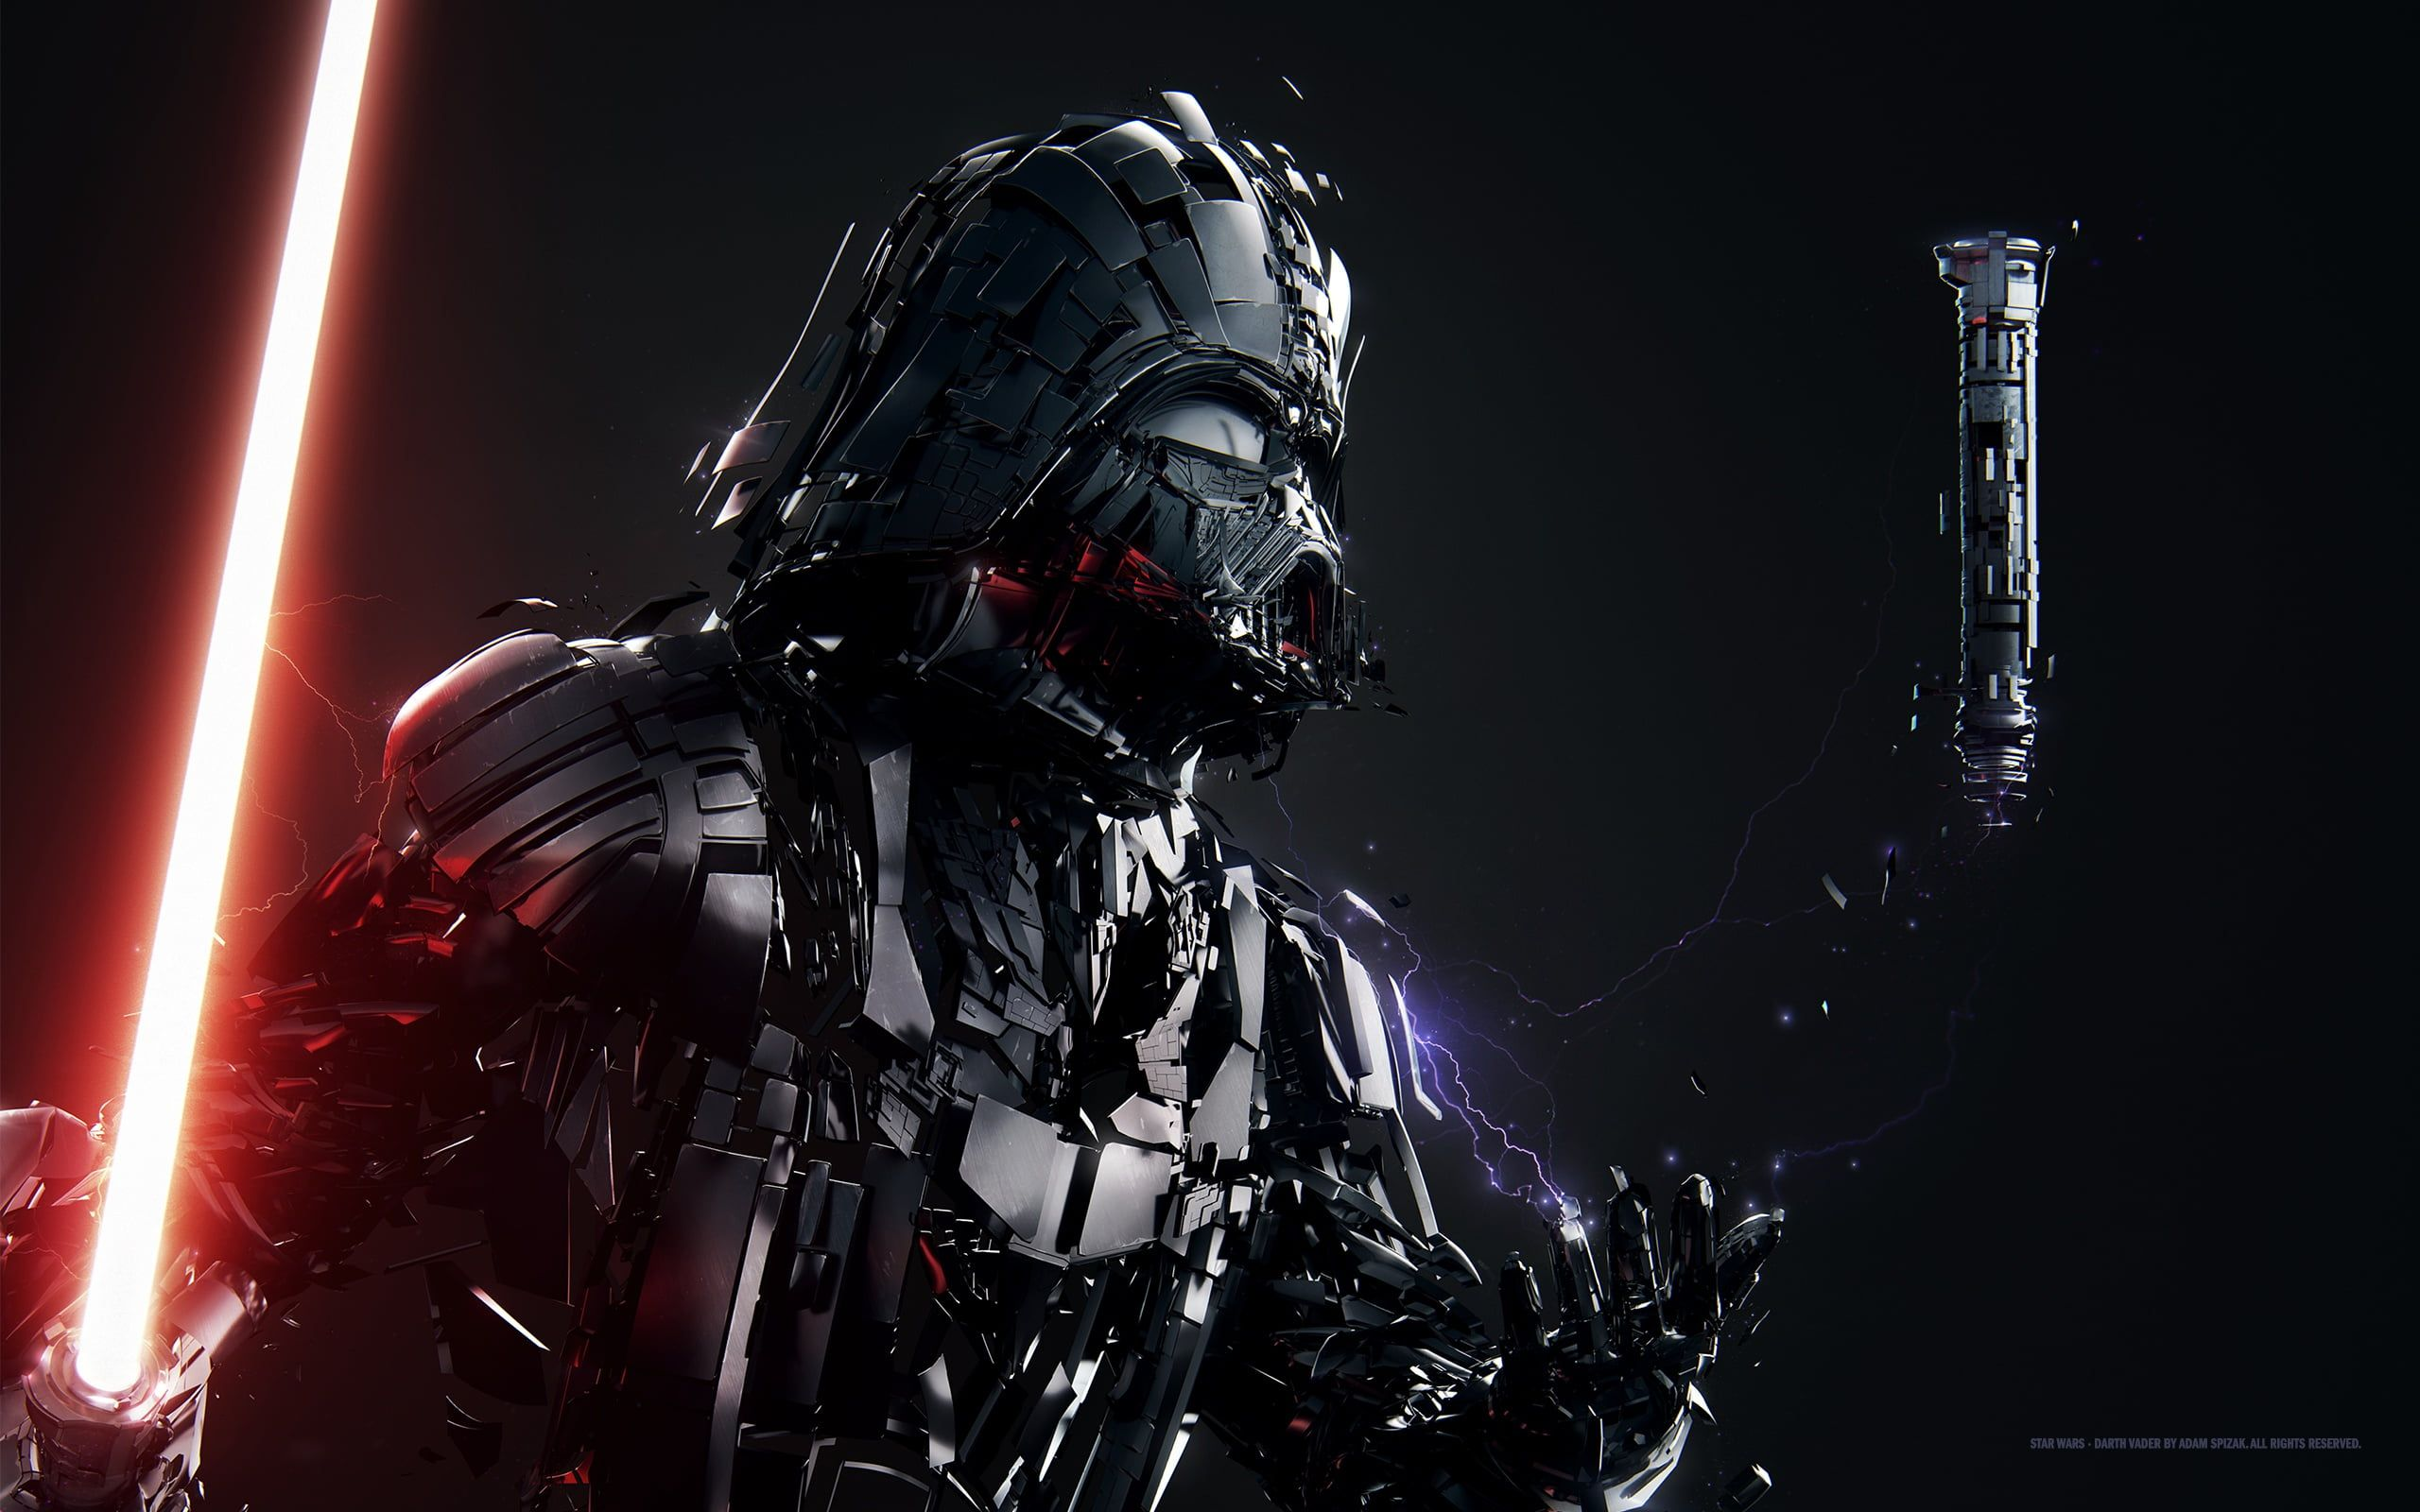 Darth Vader Star Wars Sith Adam Spizak 2k Wallpaper Hdwallpaper Desktop In 2020 Darth Vader Wallpaper Star Wars Wallpaper Star Wars Fan Art